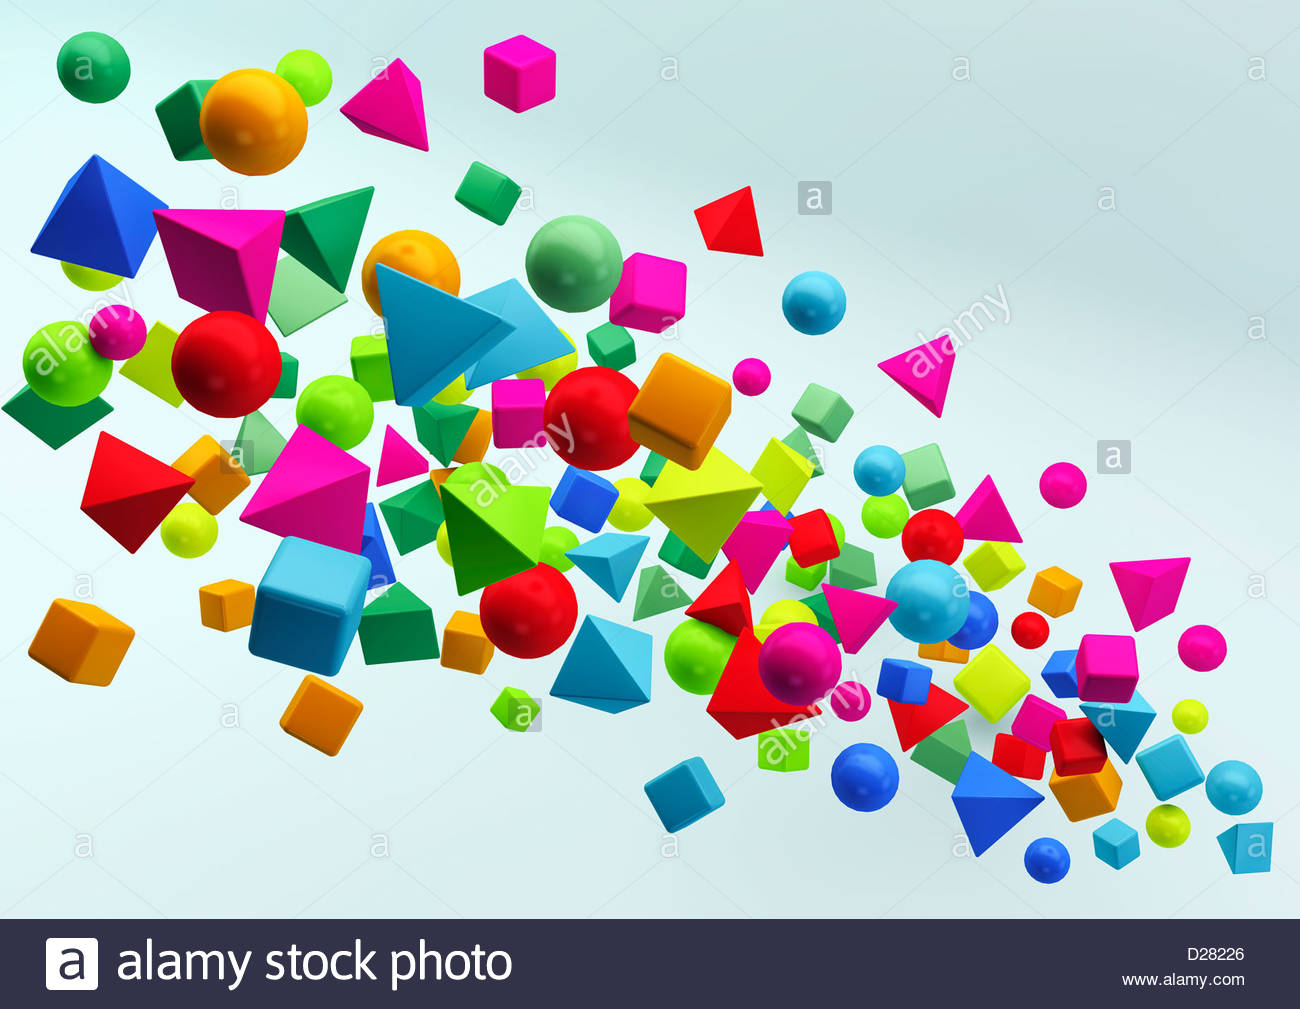 Abstract floating cluster of multicolored geometric shapes on blue background - Stock Image